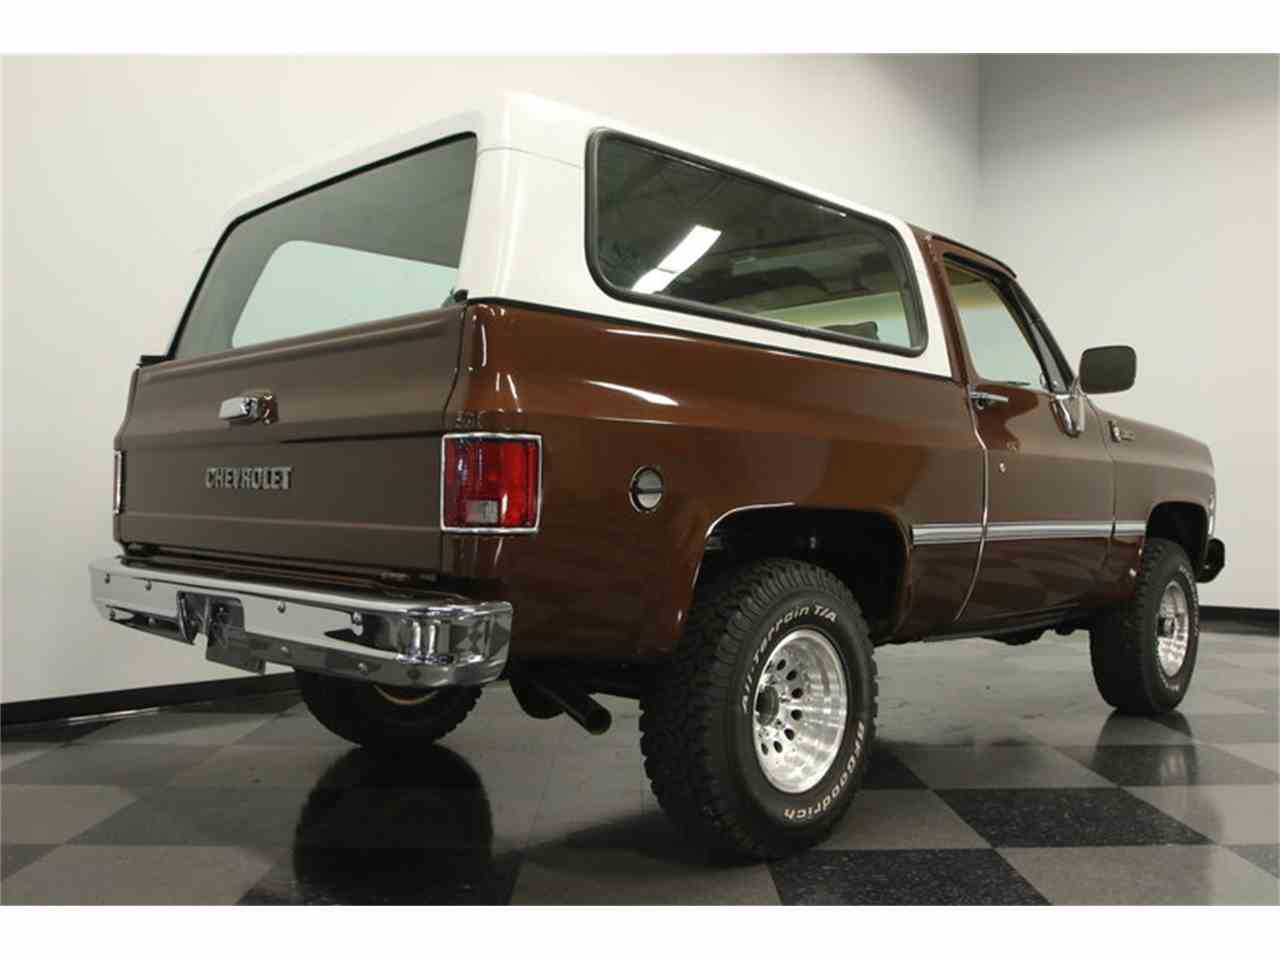 Large Picture of '77 Chevrolet Blazer located in Lutz Florida - $22,995.00 Offered by Streetside Classics - Tampa - MZ6X